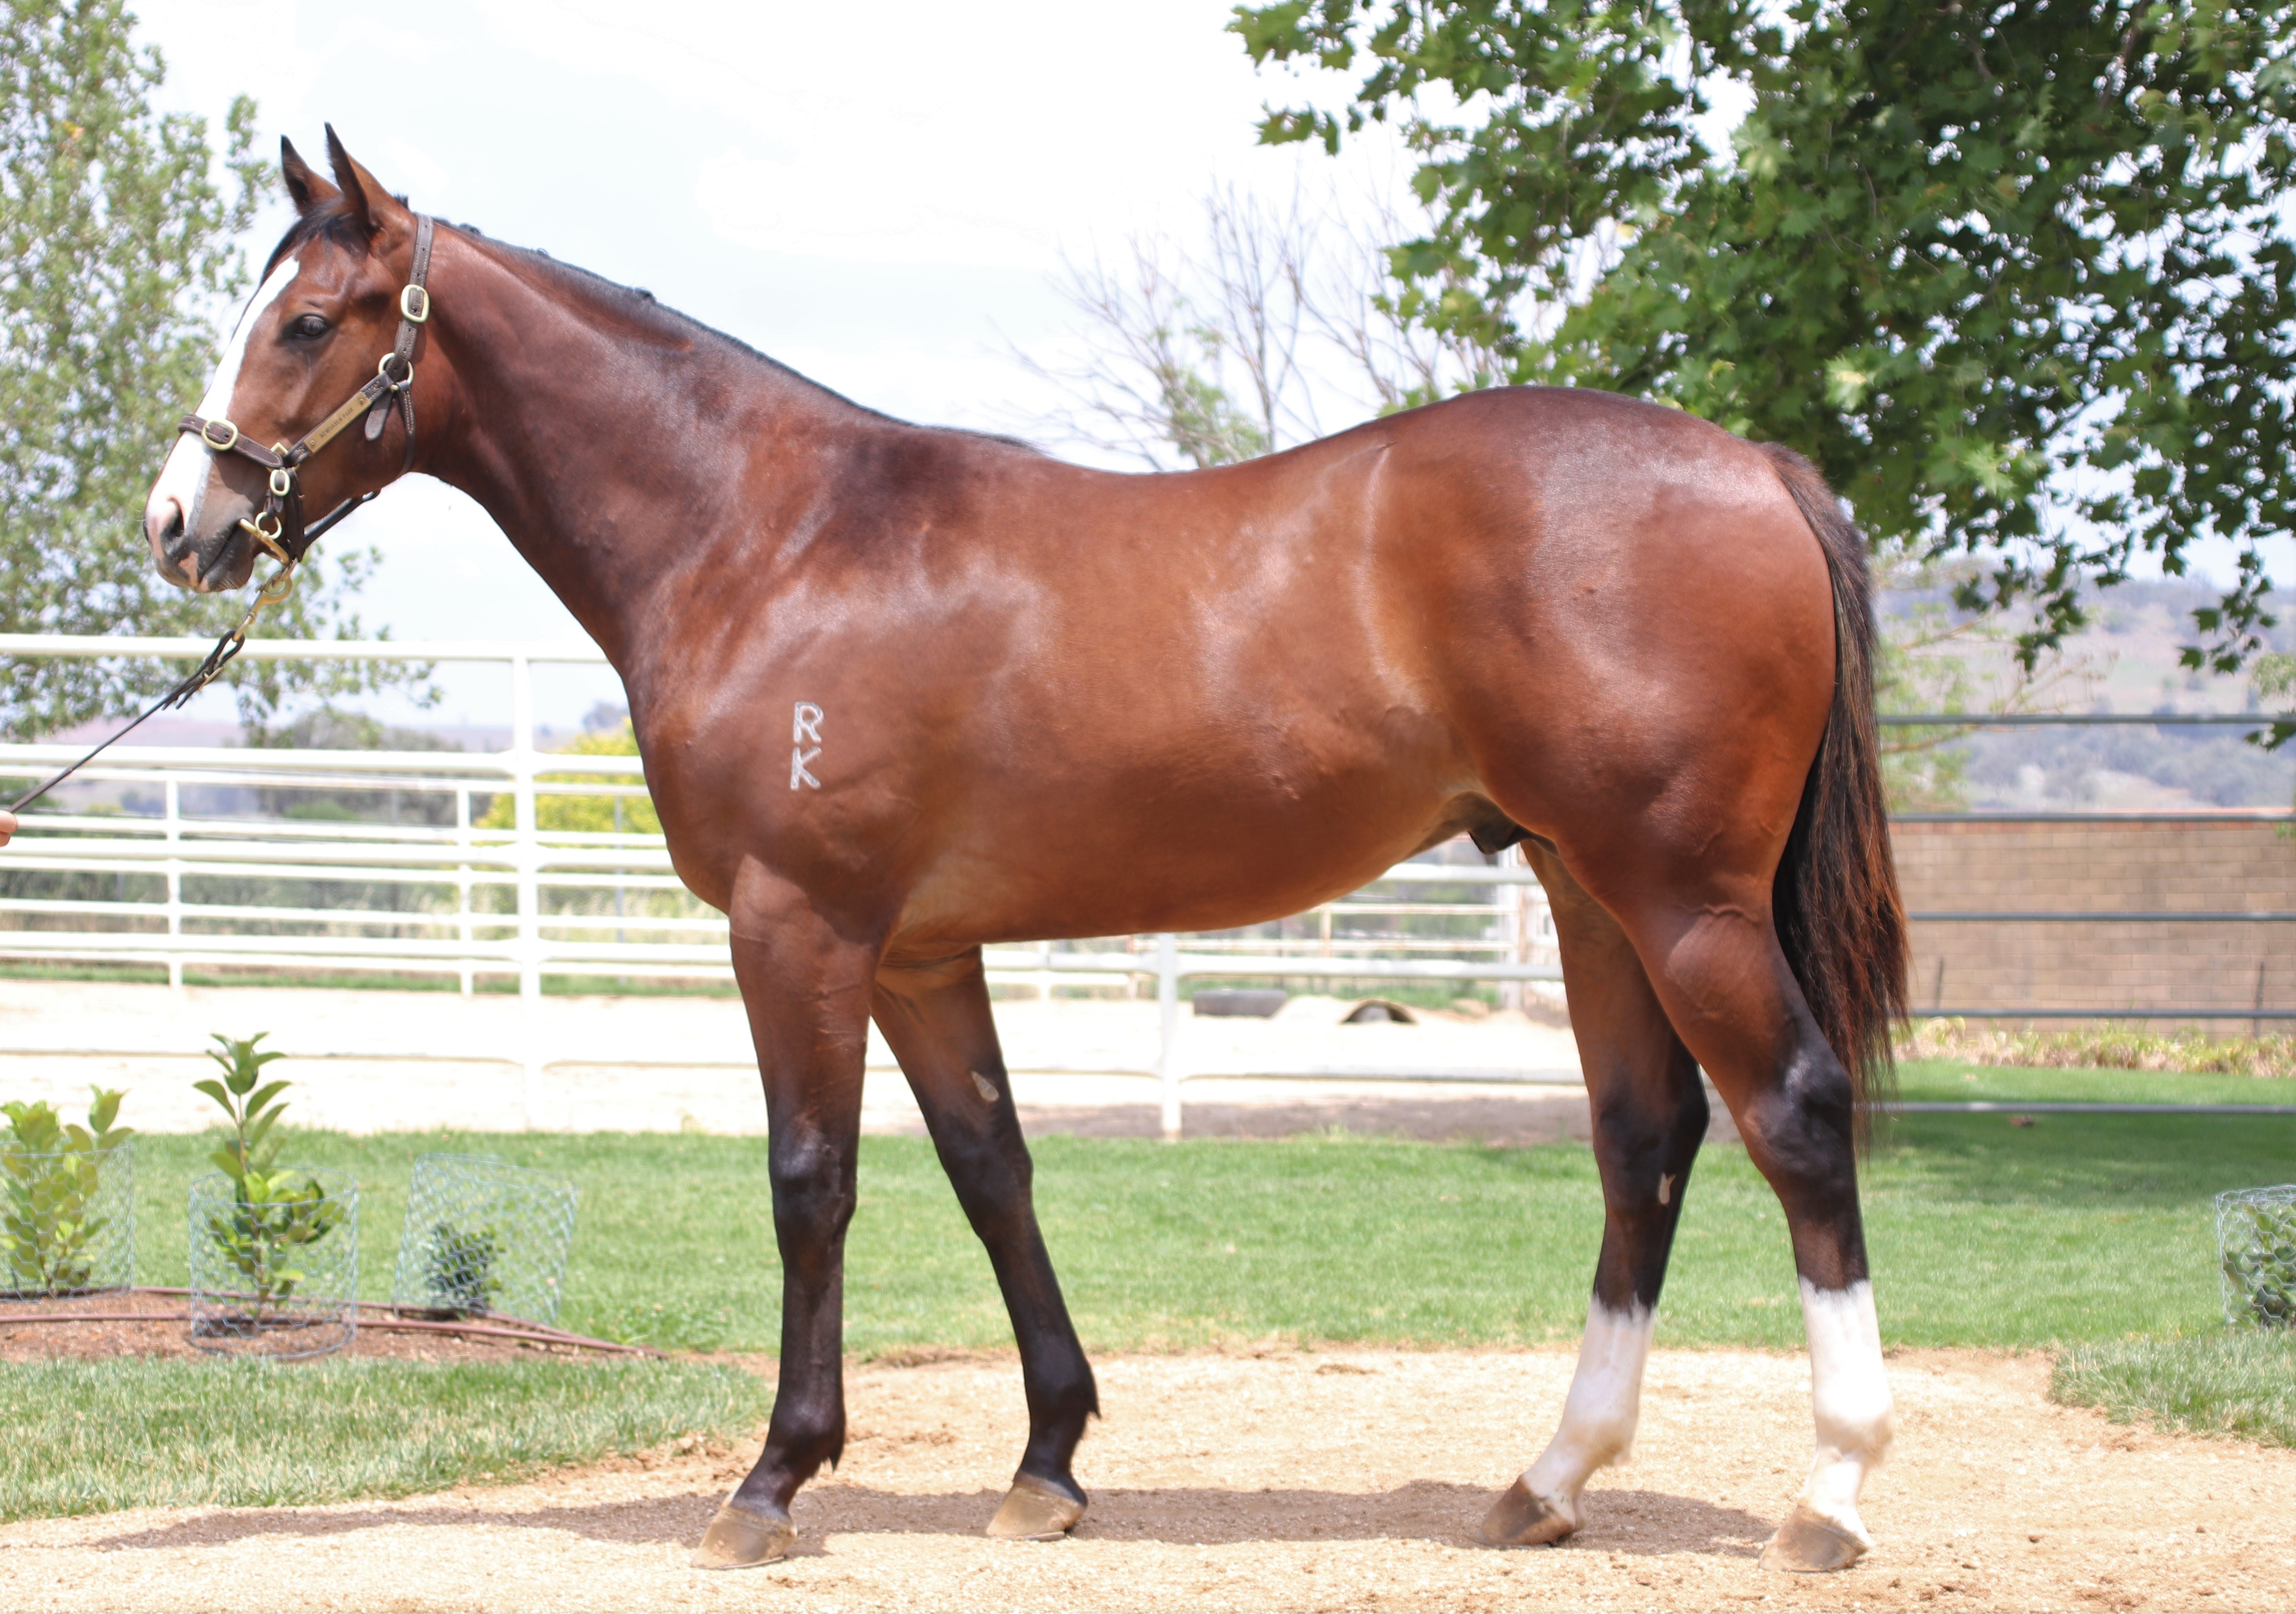 MOORE & SUMMIT RACING SECURE VIA AFRICA COLT